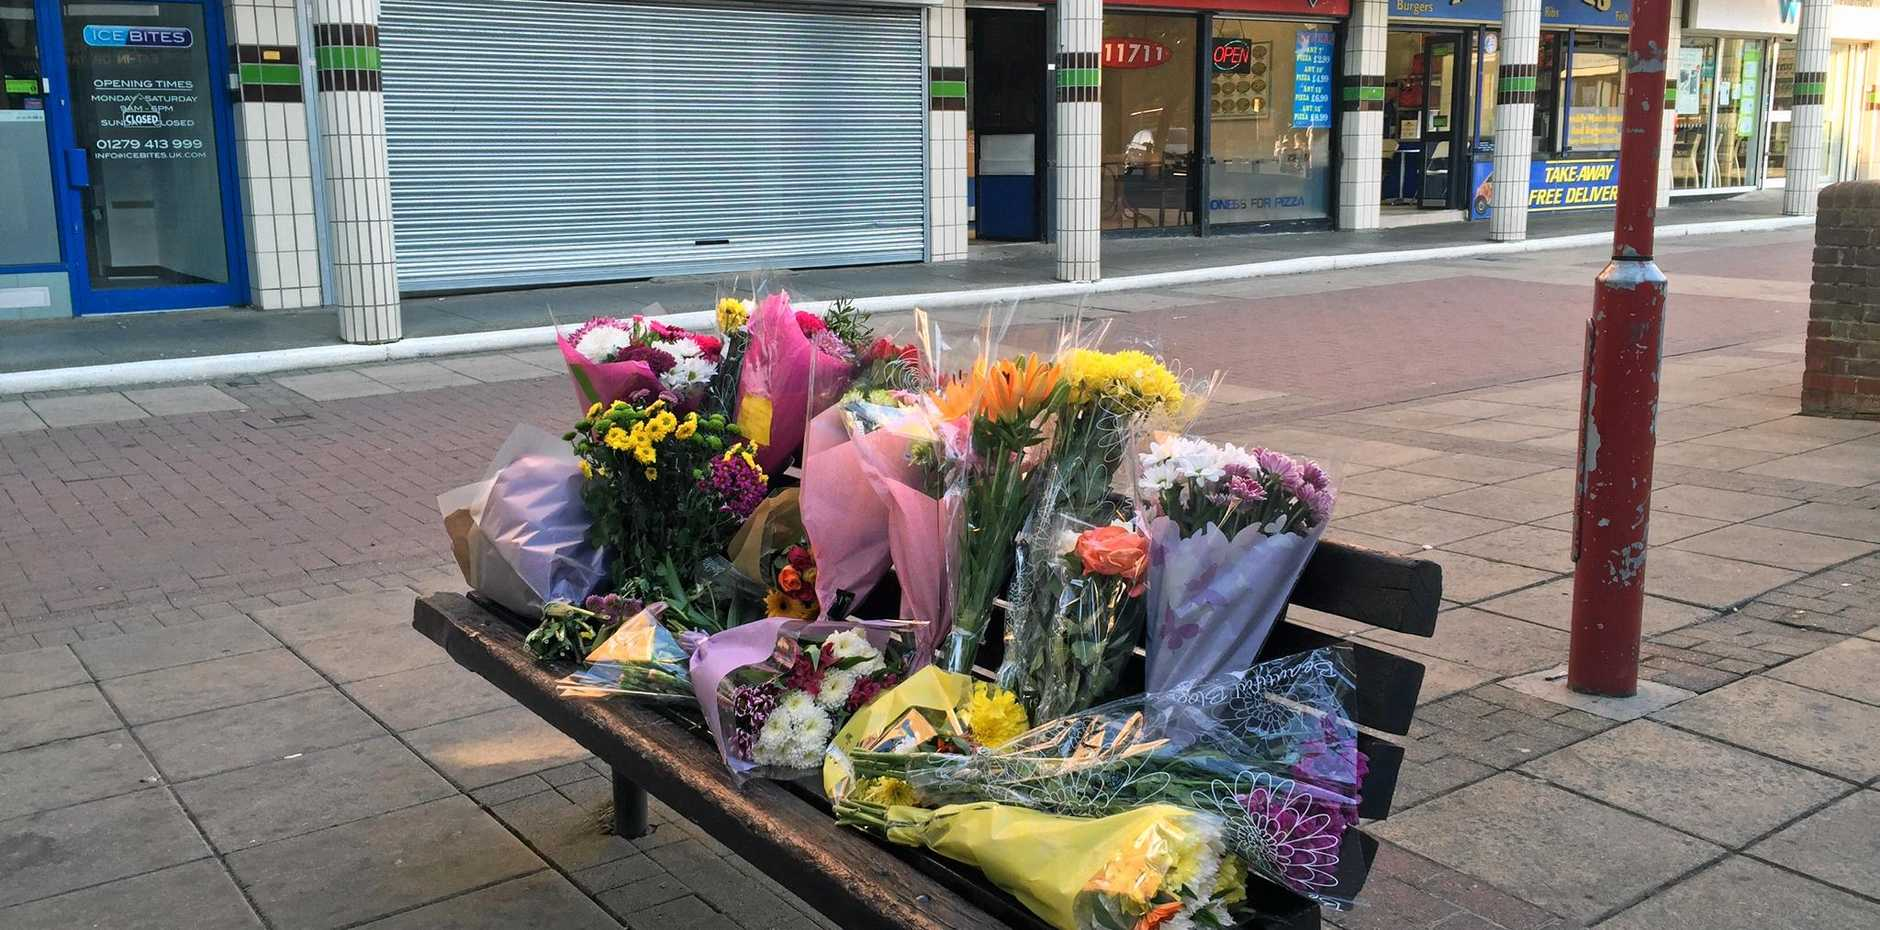 Flowers are placed near the scene of an attack that resulted in the death of a Polish man, in Harlow, England, Tuesday, Aug. 30, 2016. British police have arrested six teenagers suspected of murdering a Polish man in a possible hate crime, according to police and local media. Essex police said in a statement Tuesday that four 15-year-old boys and one 16-year-old boy from the town of Harlow, 50 kilometers (30 miles) north of London, were arrested Monday on suspicion of murder. They were later released on bail pending further inquiries until Oct. 7. (AP Photo/Derl McCrudden)